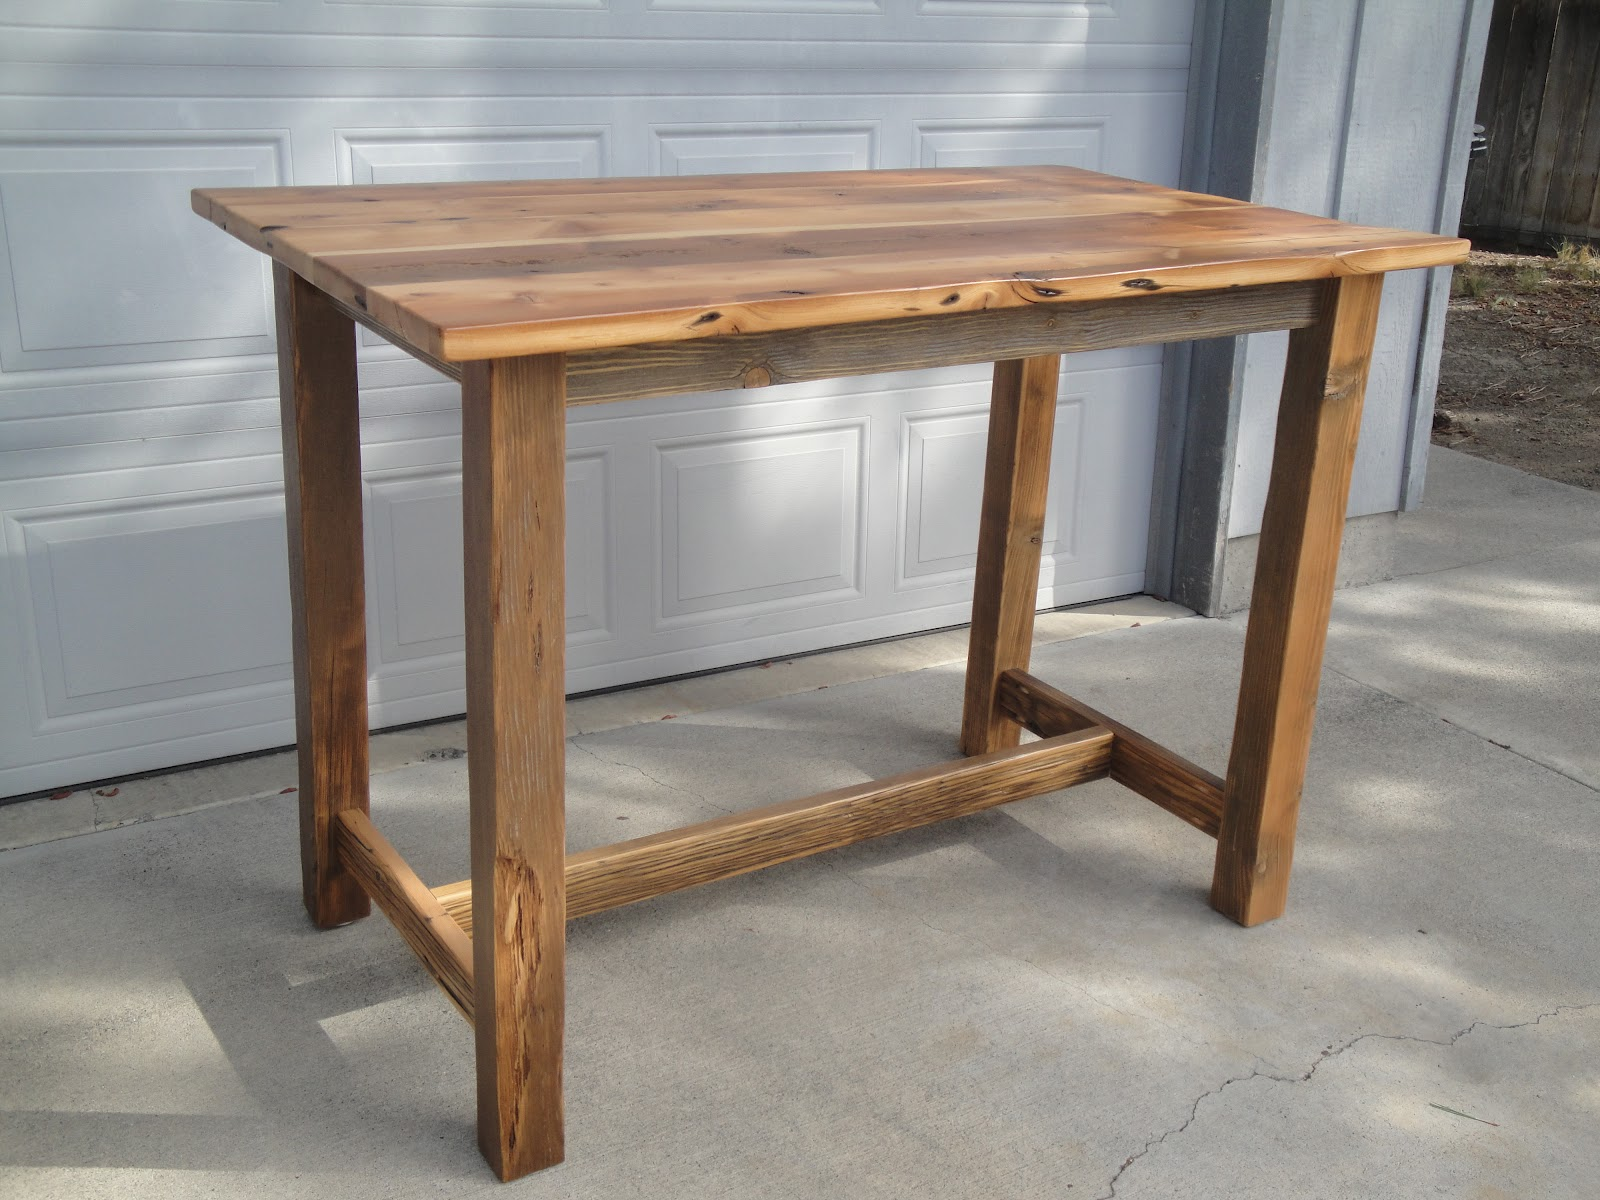 Original Free Cafe Table Plans Woodwork City Woodworking